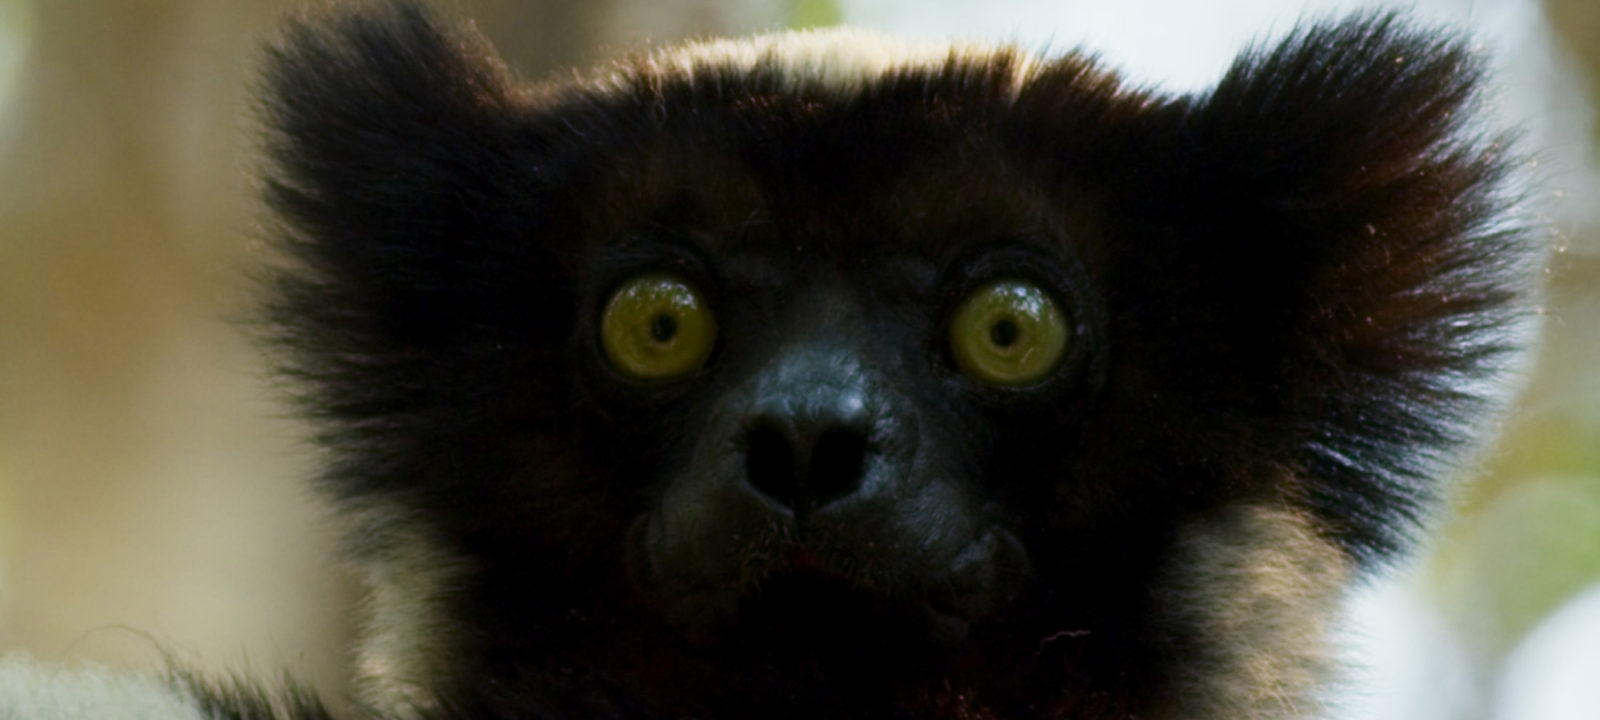 An Indri (a type of lemur) looks on at her forest in Madagascar.